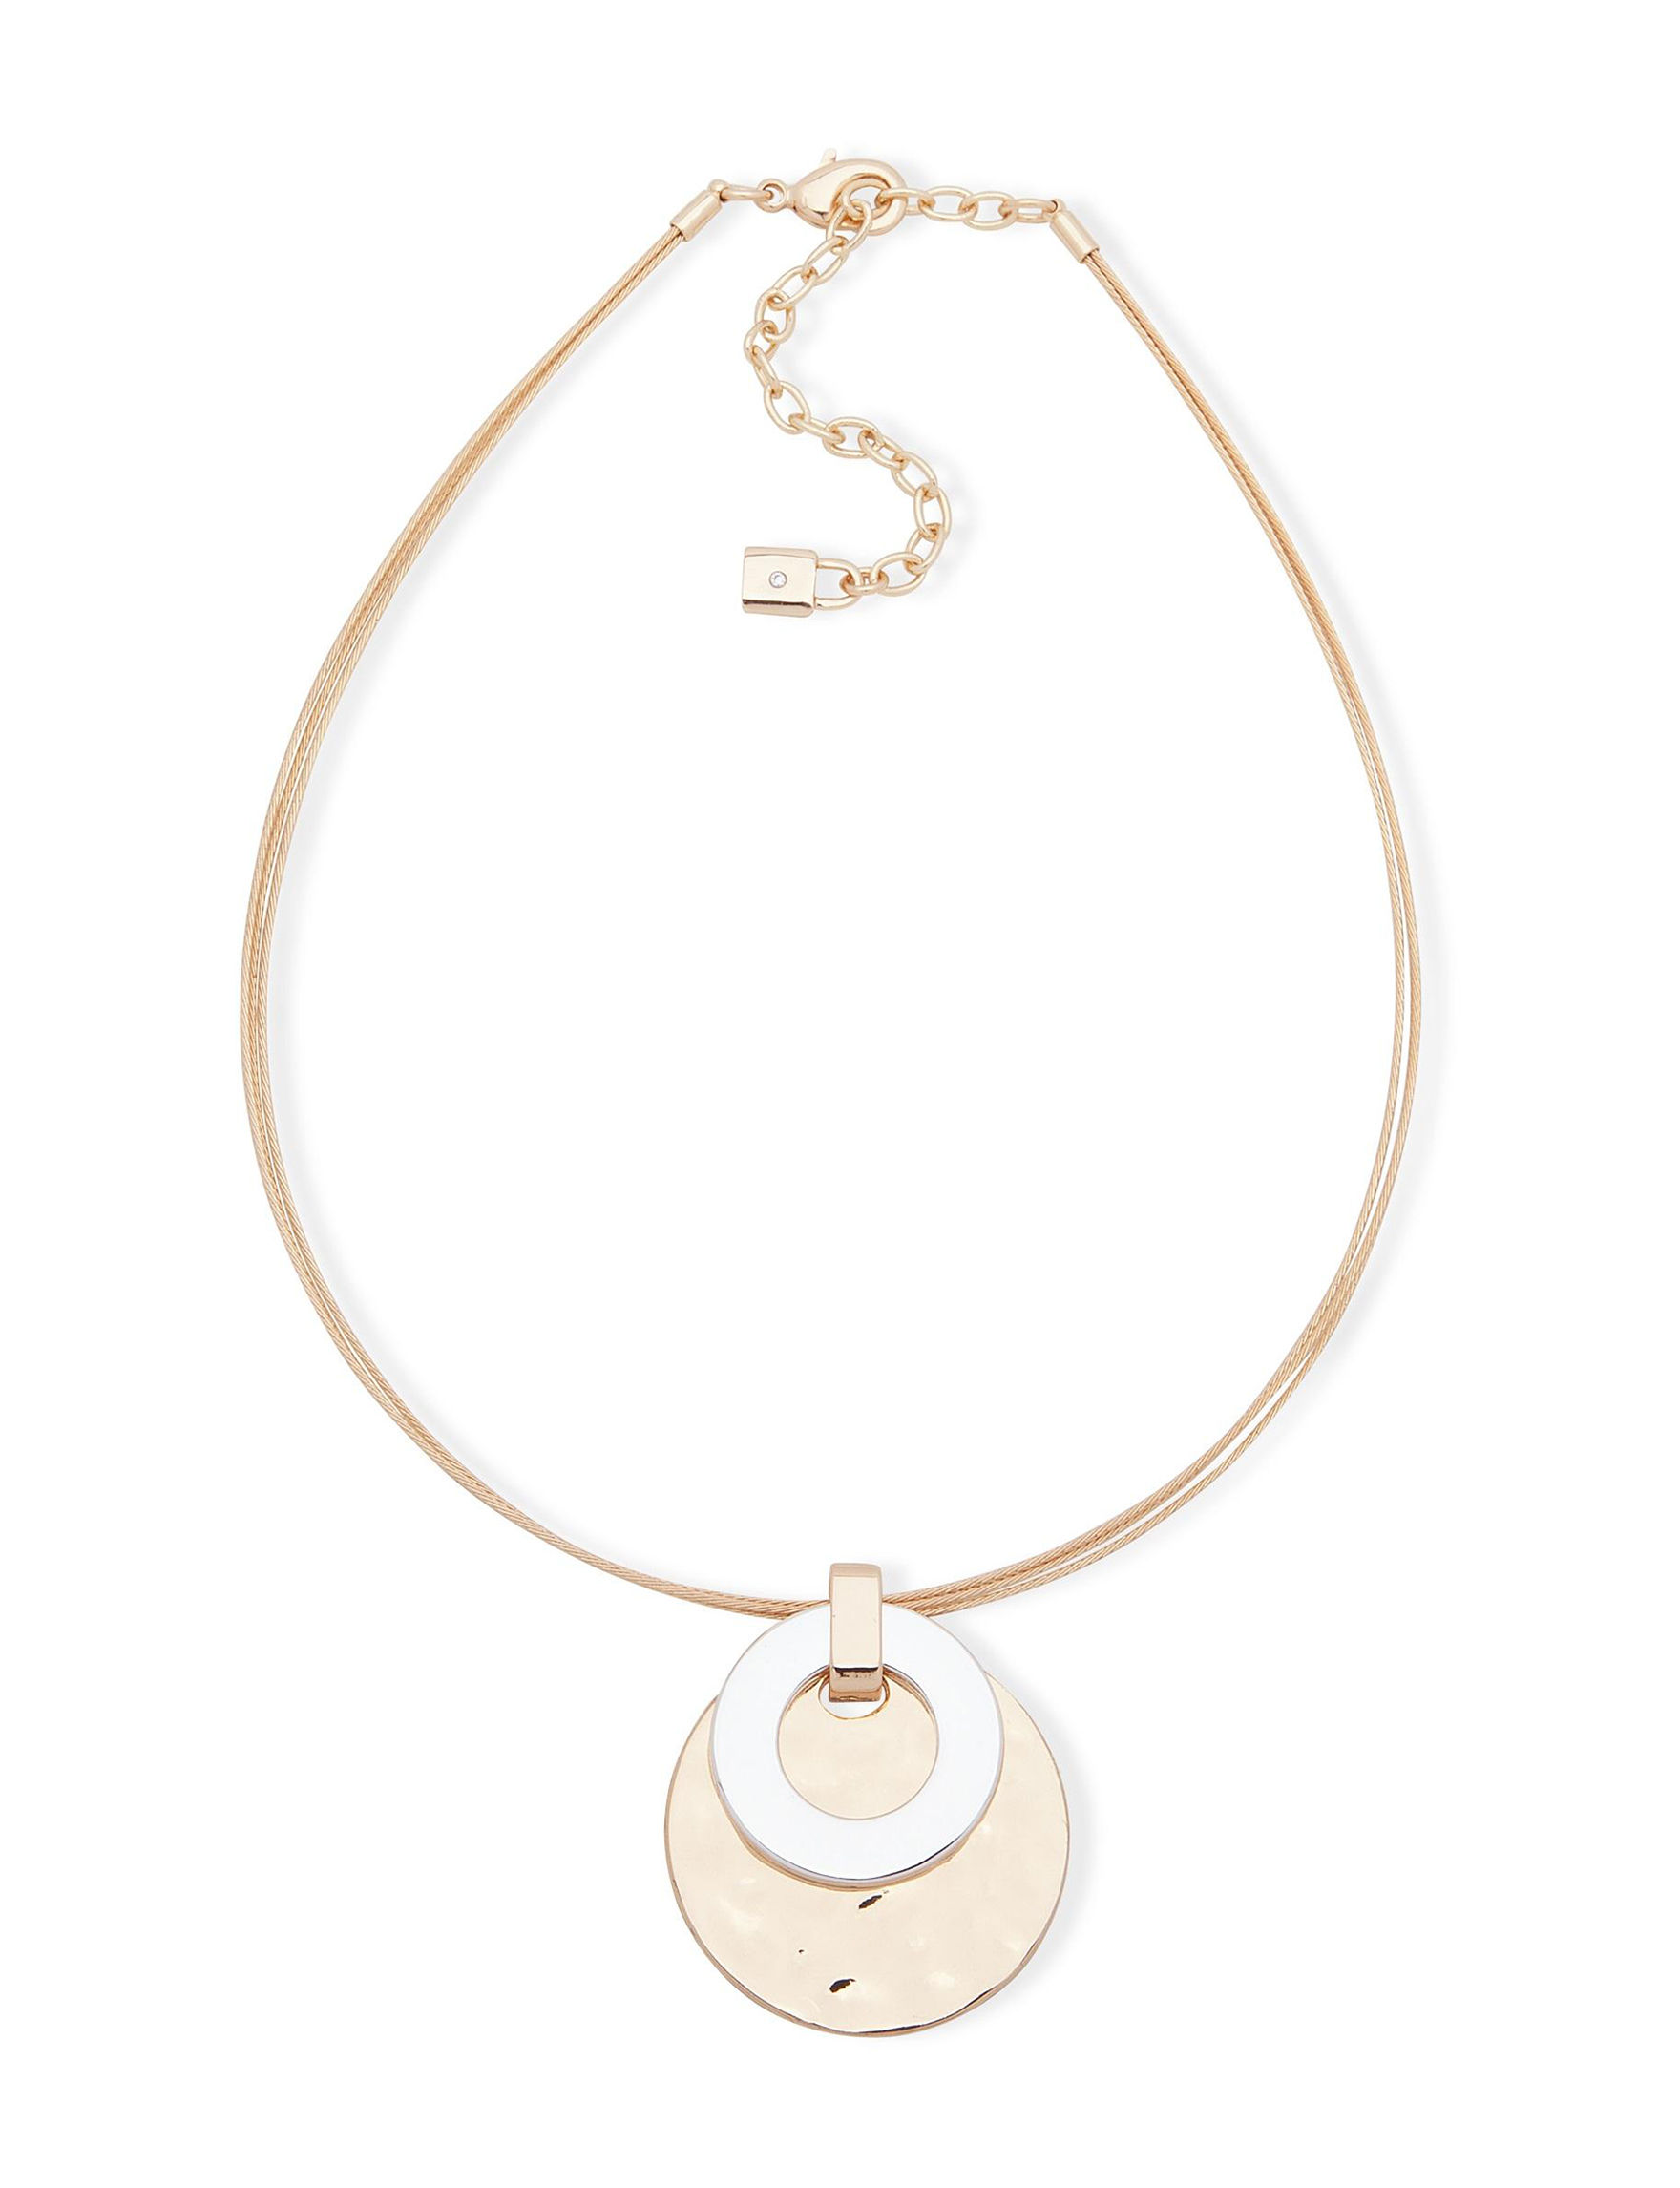 Chaps Silver / Gold Necklaces & Pendants Fashion Jewelry